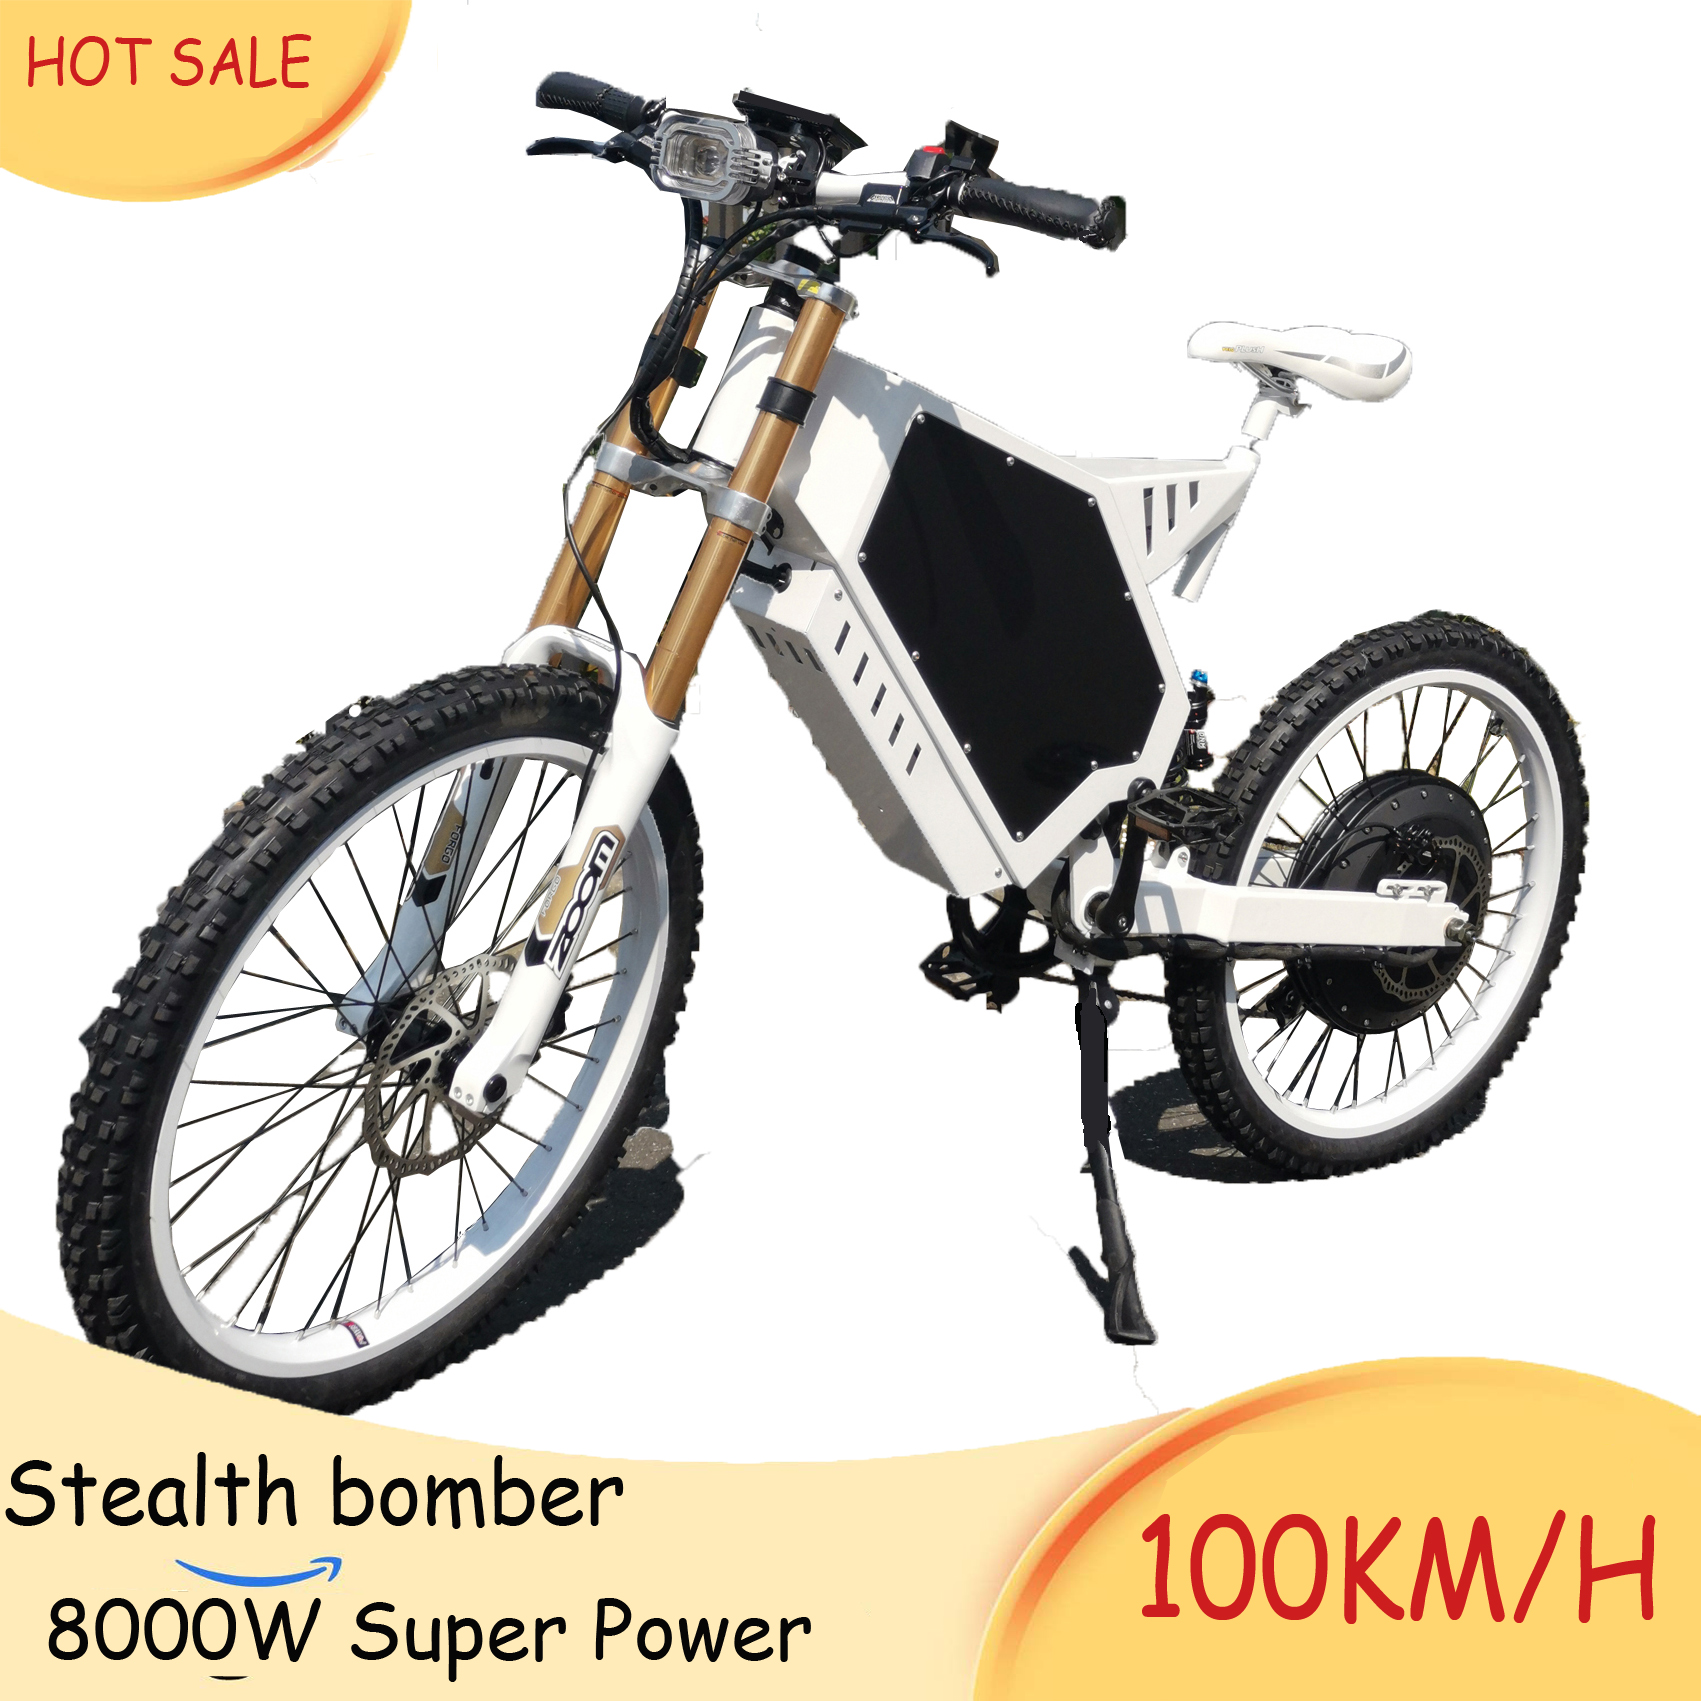 120km/h 5 Star Reviews New Electric motorcycles 3000w 5000w 8000w fastest adult electric motorcycle with sinewave controller